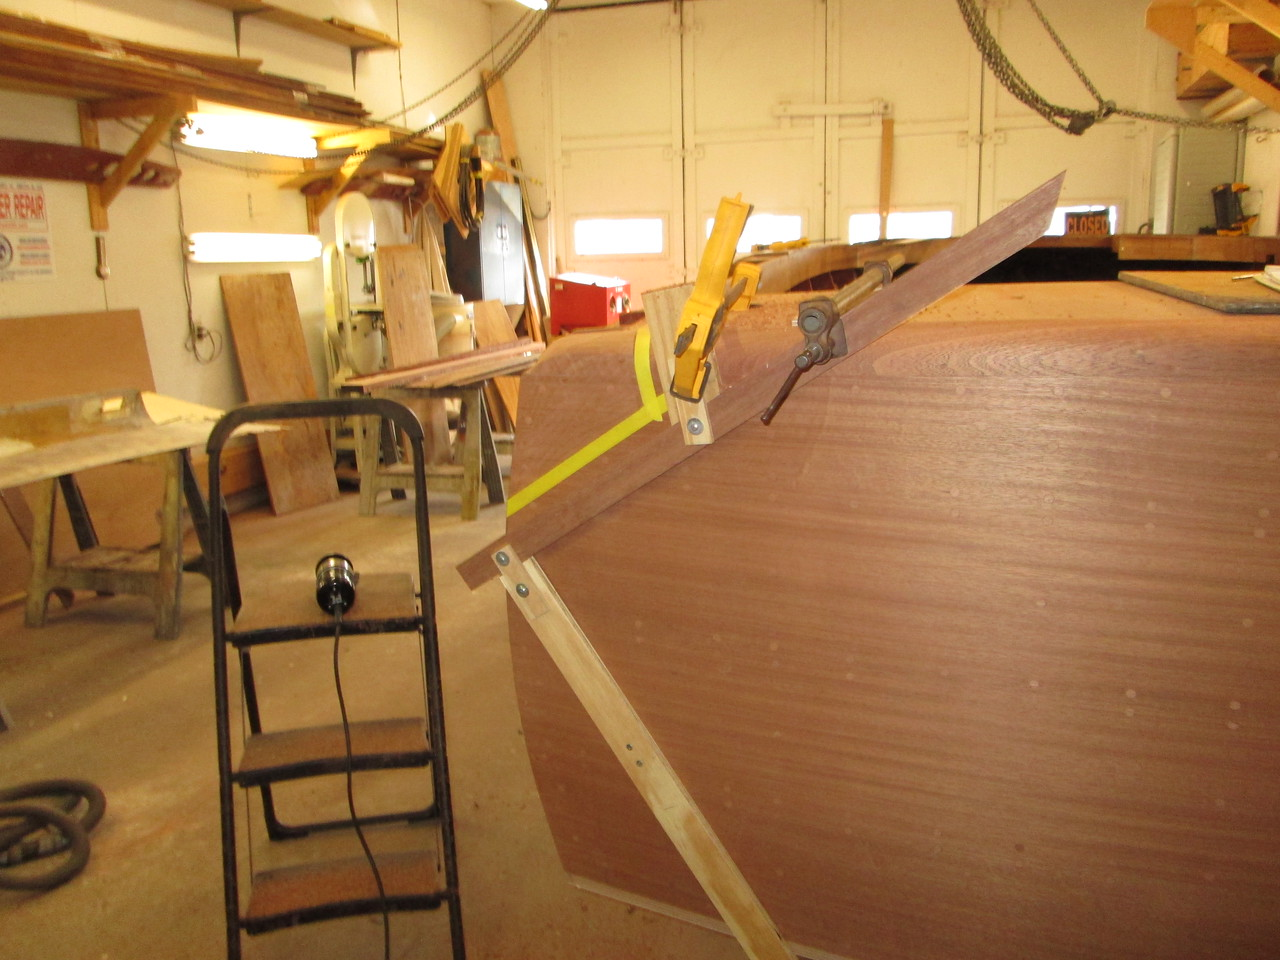 Router jig made and attached to the transom so the fin can be rabbited to the hull.